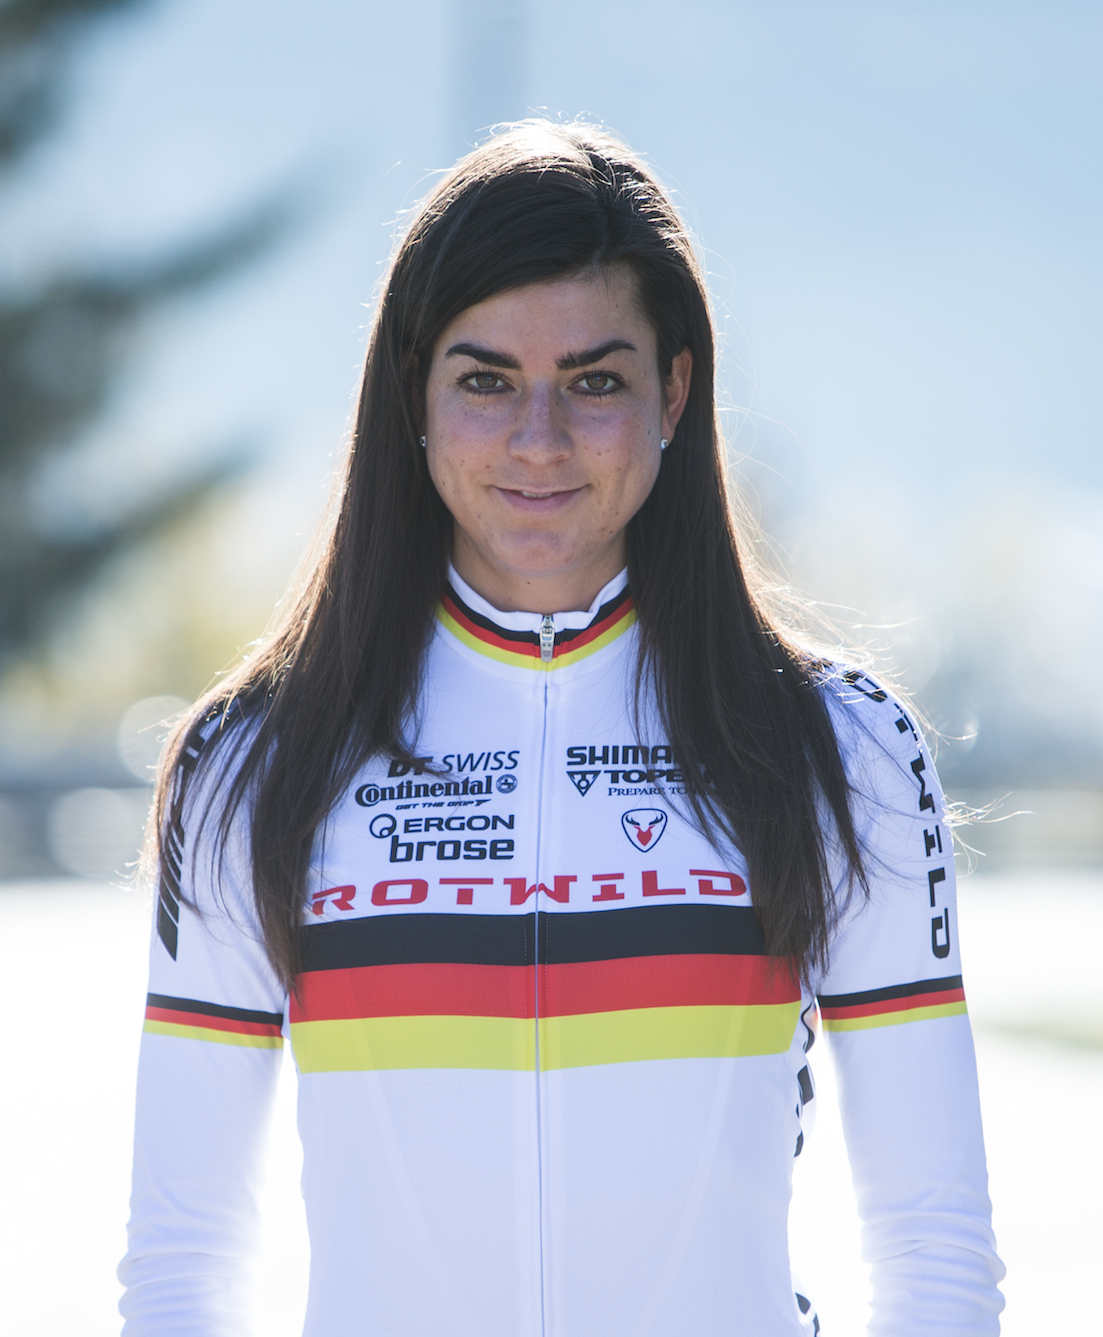 Nadine-Rieder_portrait_national-champs-jersey_acrossthecountry_mountainbike_by-Marco-Toniolo